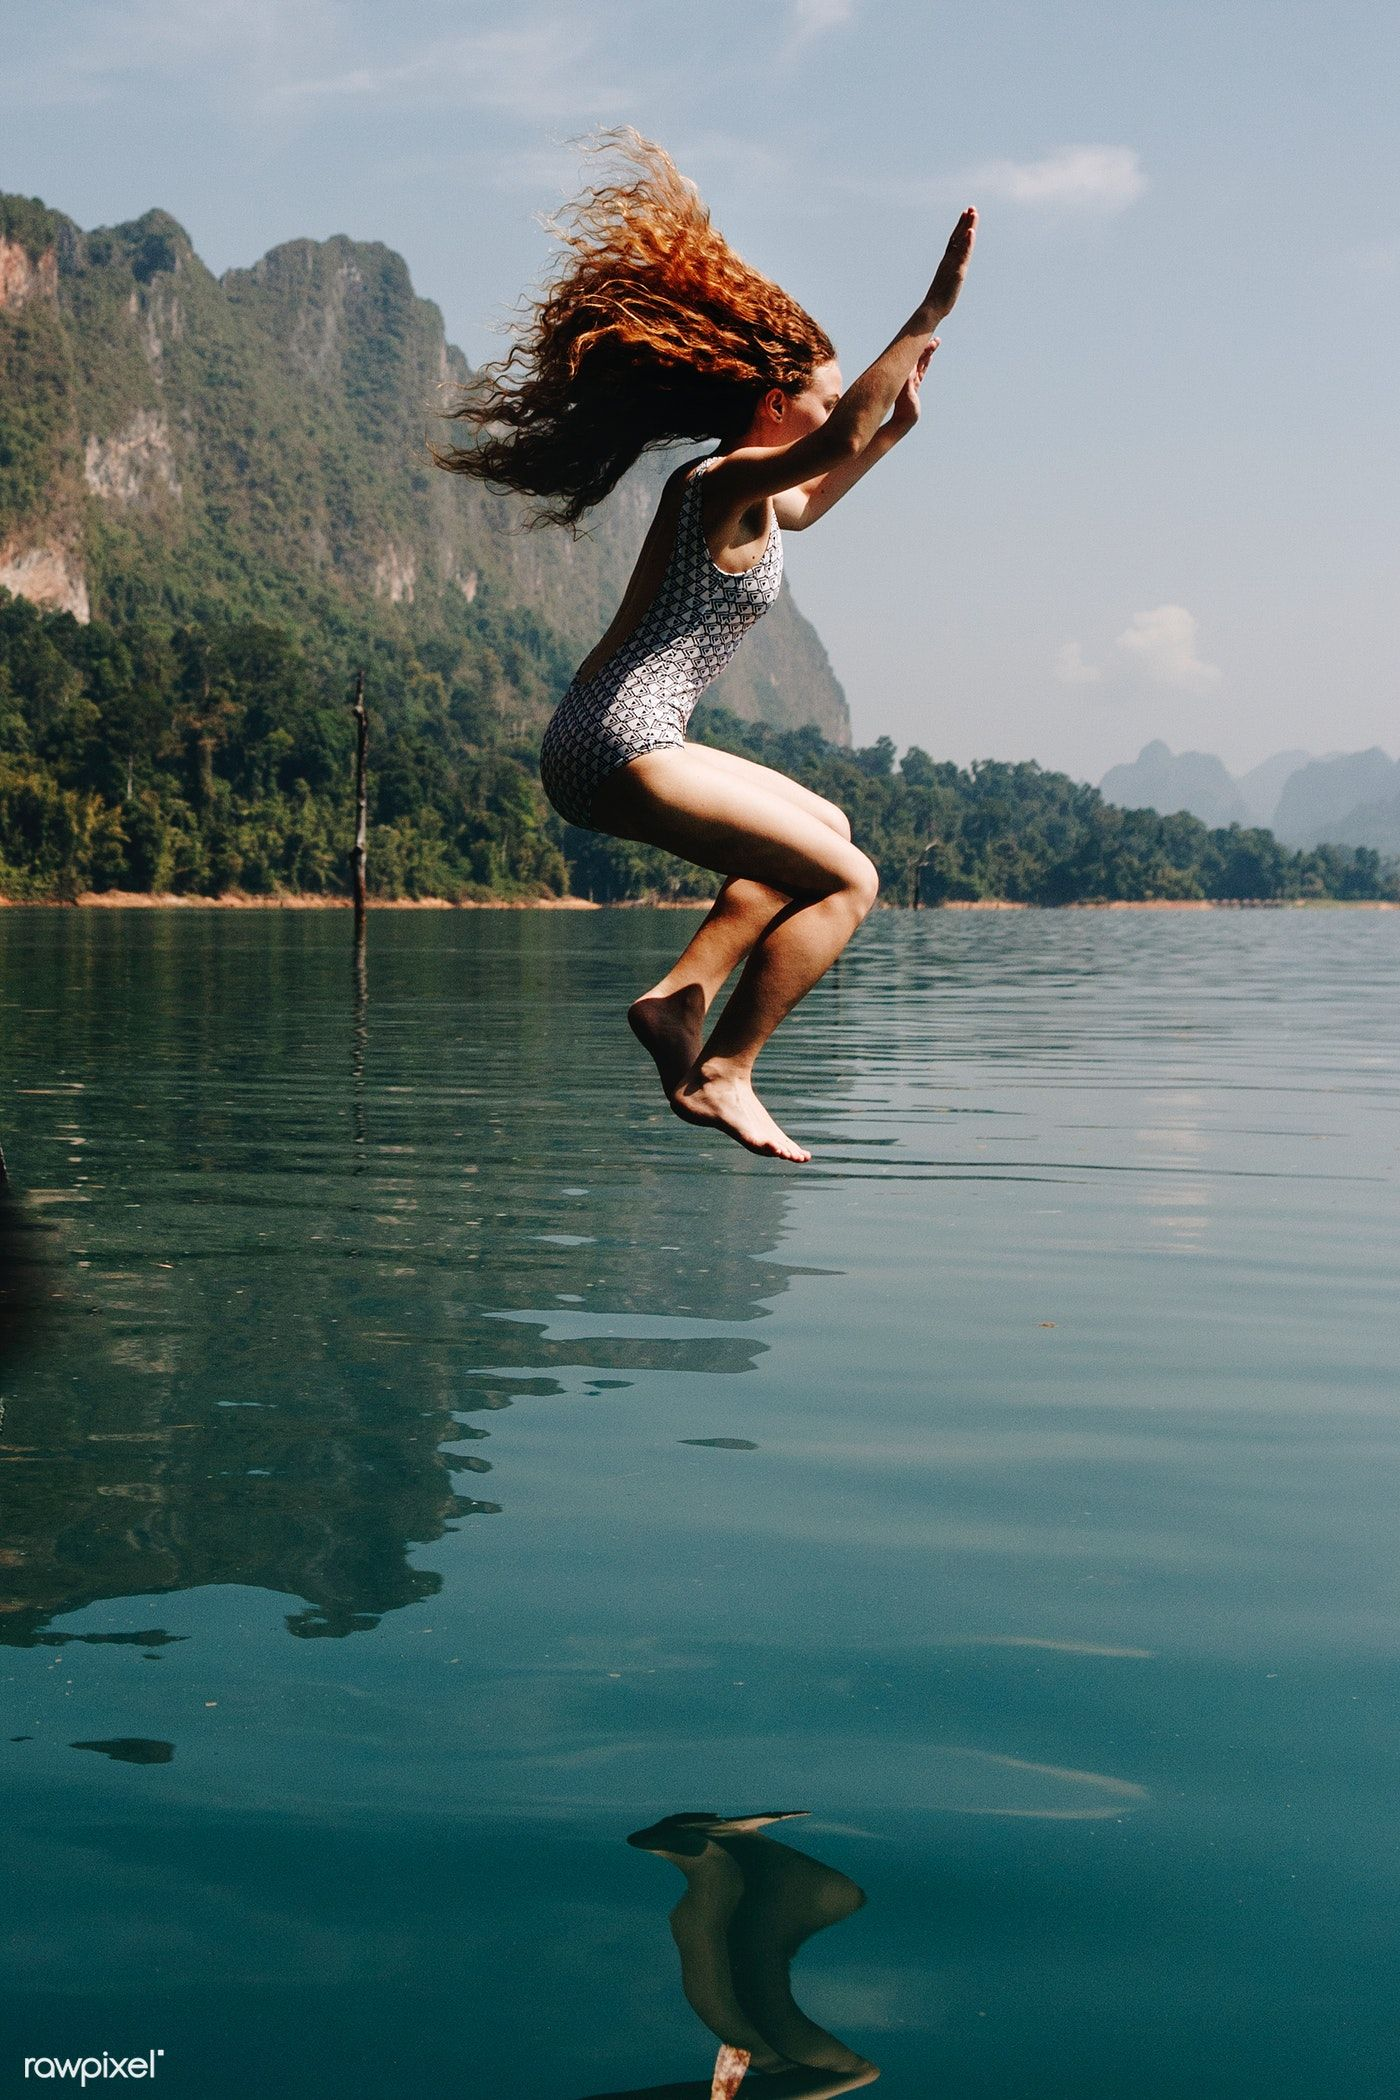 Download premium image of Woman jumping into the water 412227 in 2020 |  Female images, Photo, Water photography